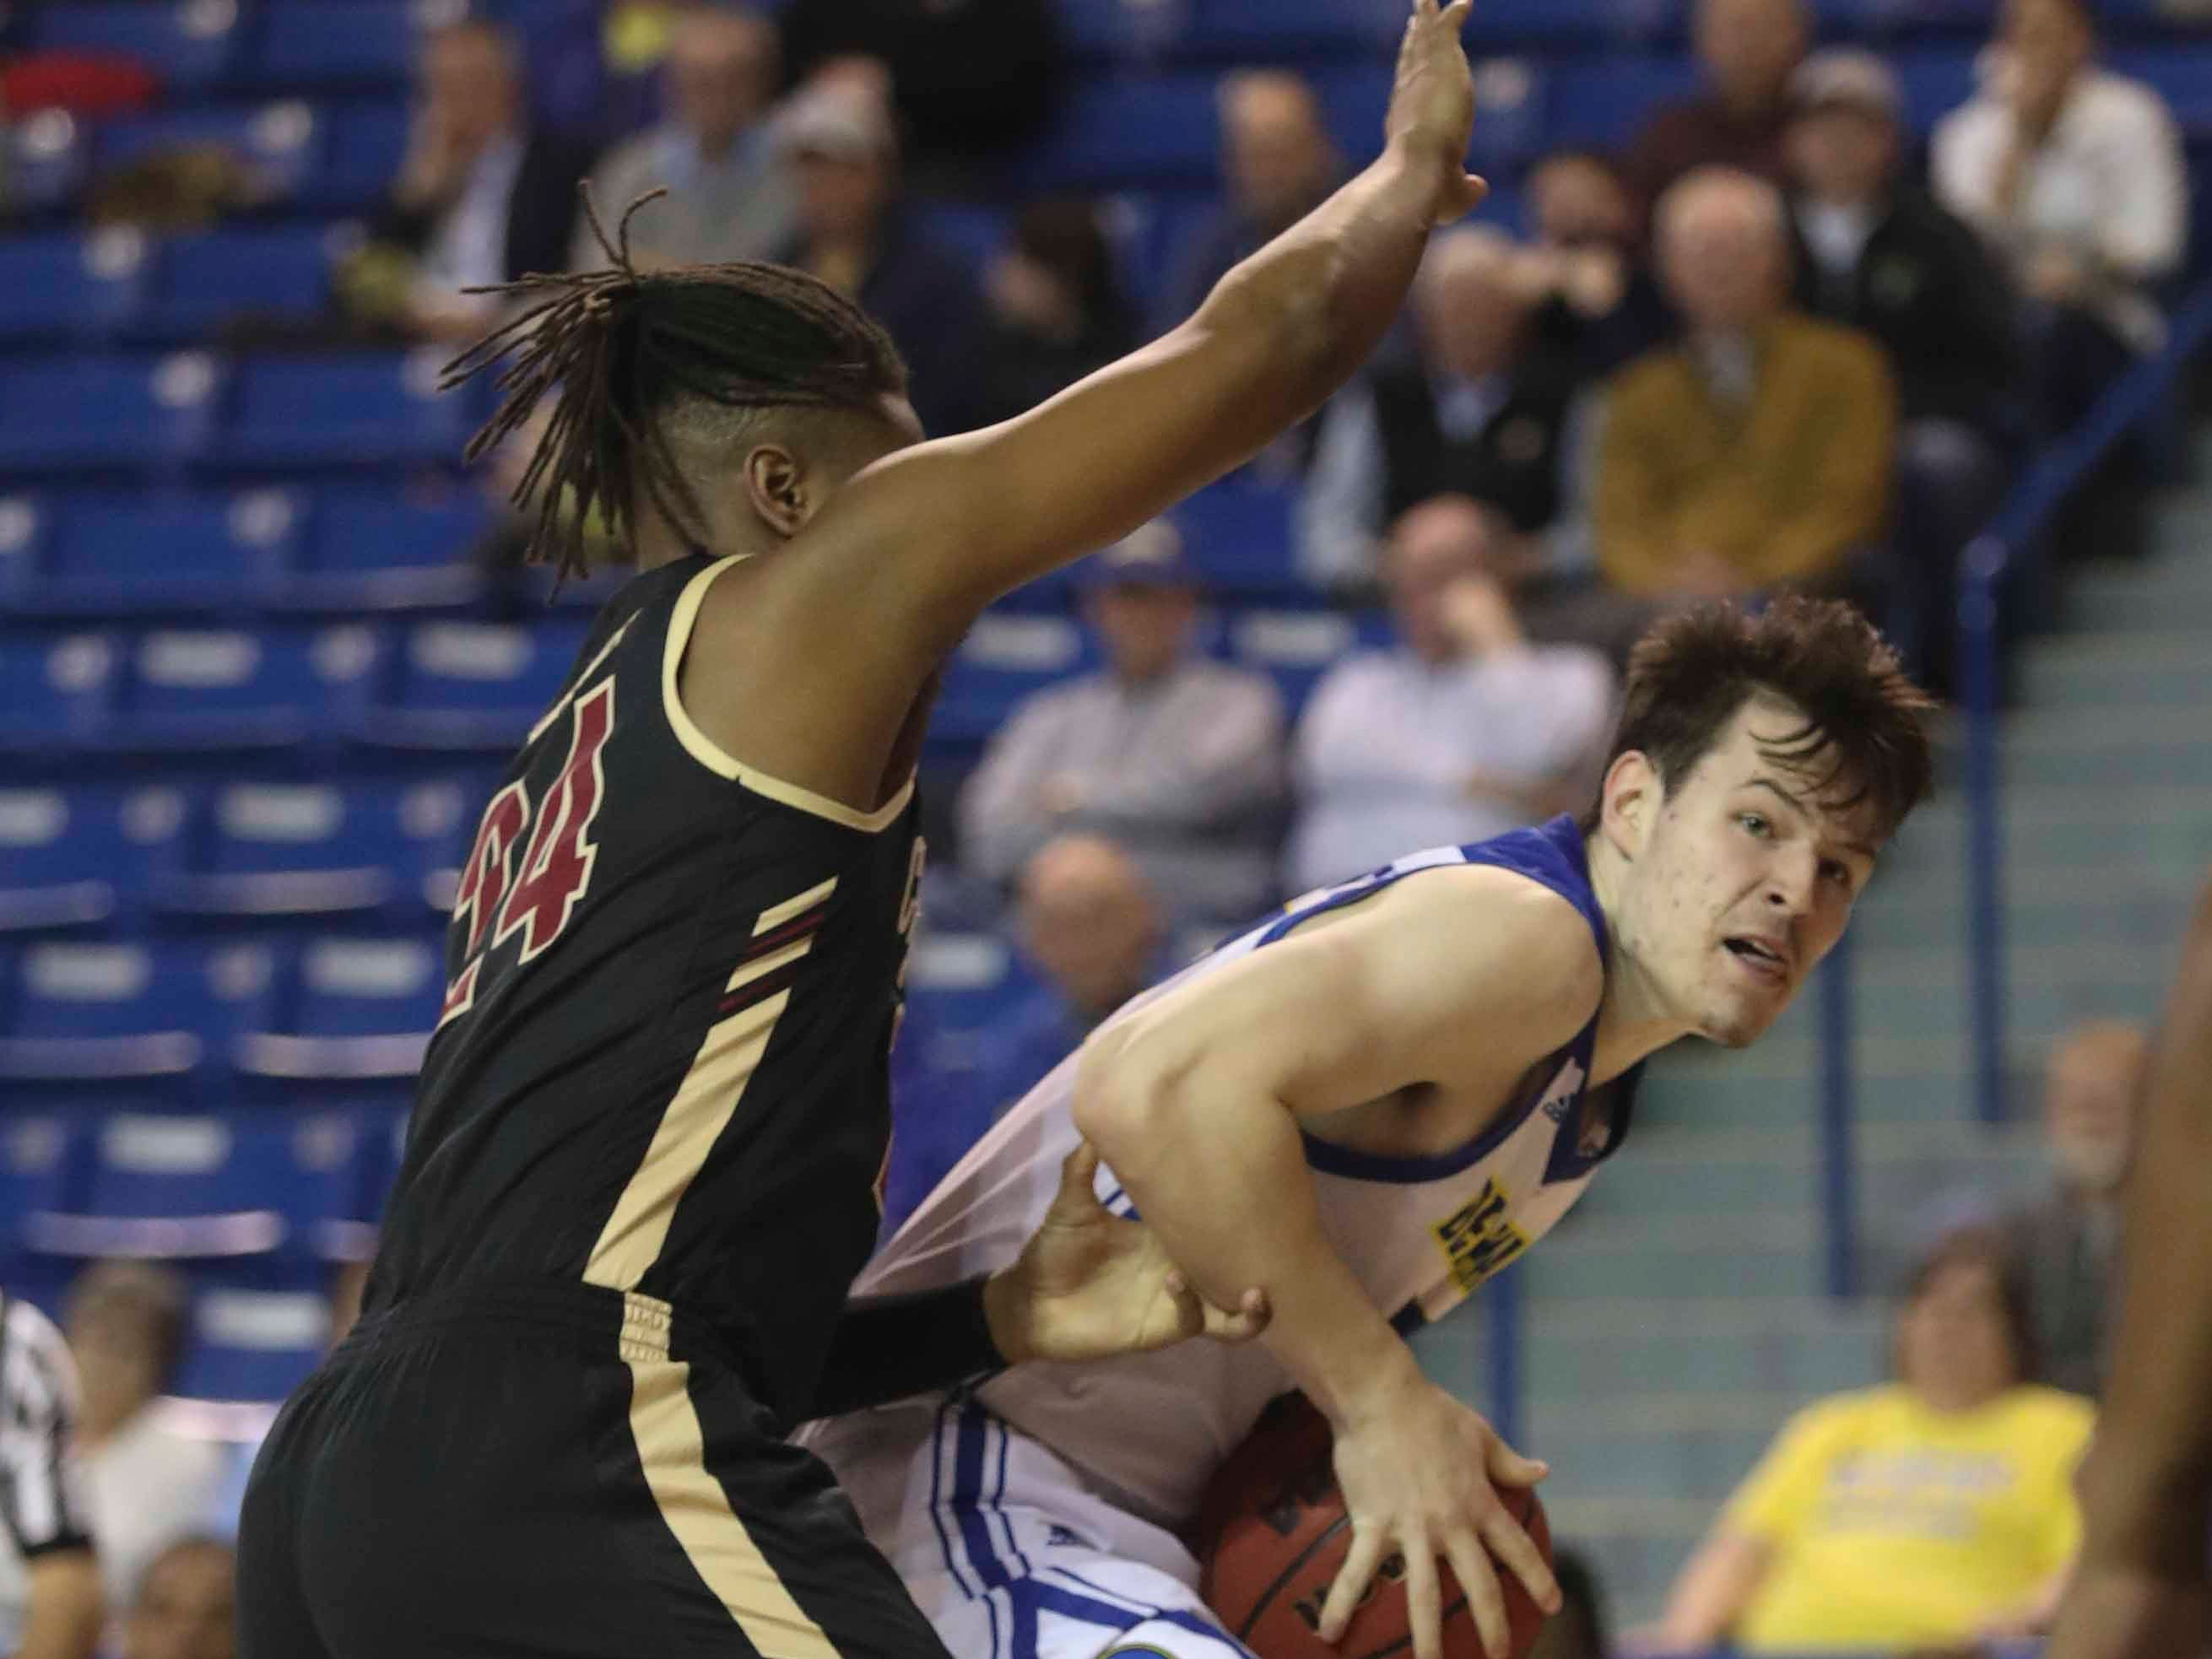 Delaware's Matt Veretto (right) tries to move to the basket against Charleston's Jaylen McManus in the first half at the Bob Carpenter Center Thursday.